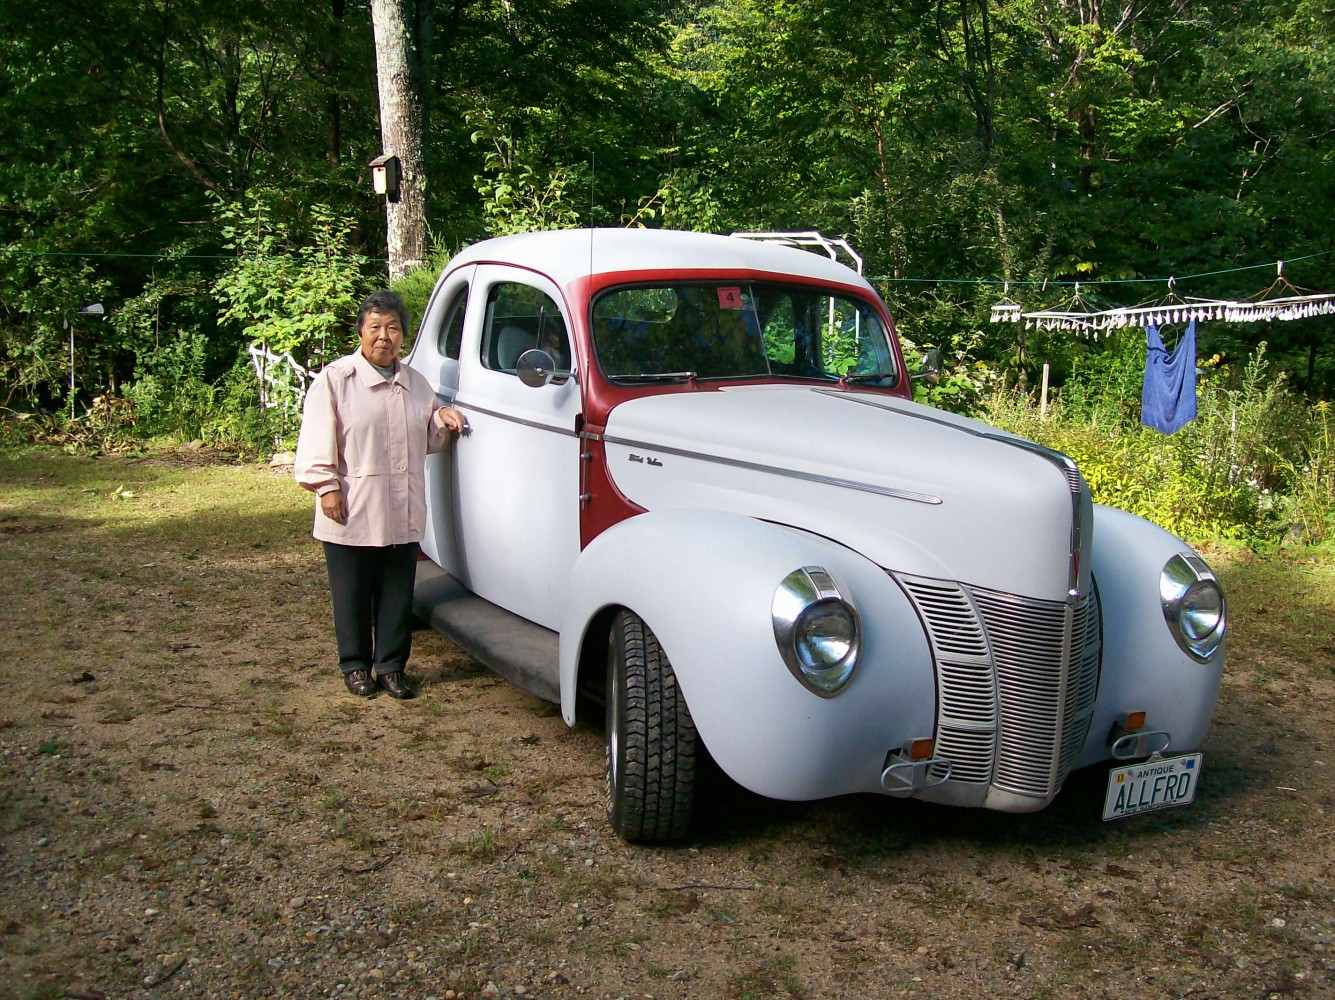 Hot Rod for Sale - 1940 Ford deluxe